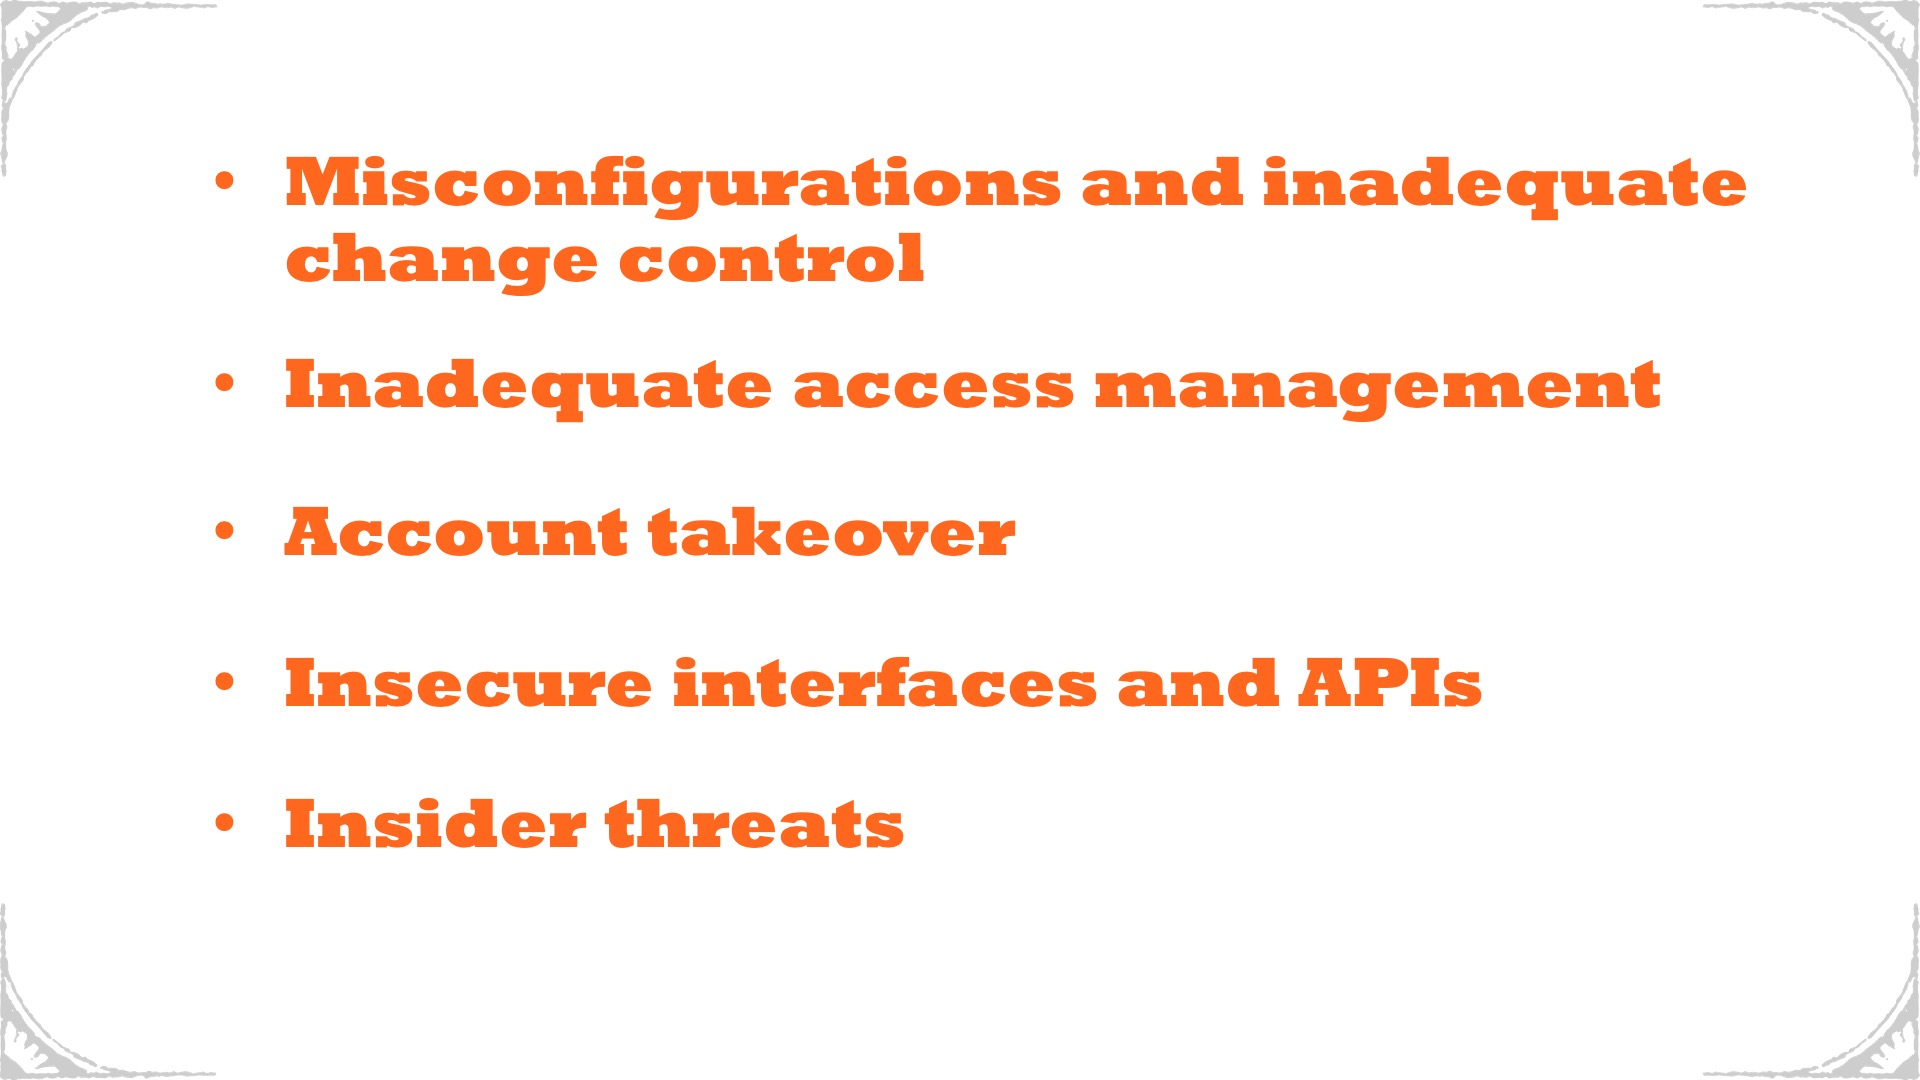 TGD Cloud Security Posture - Graphic - Bulleted List